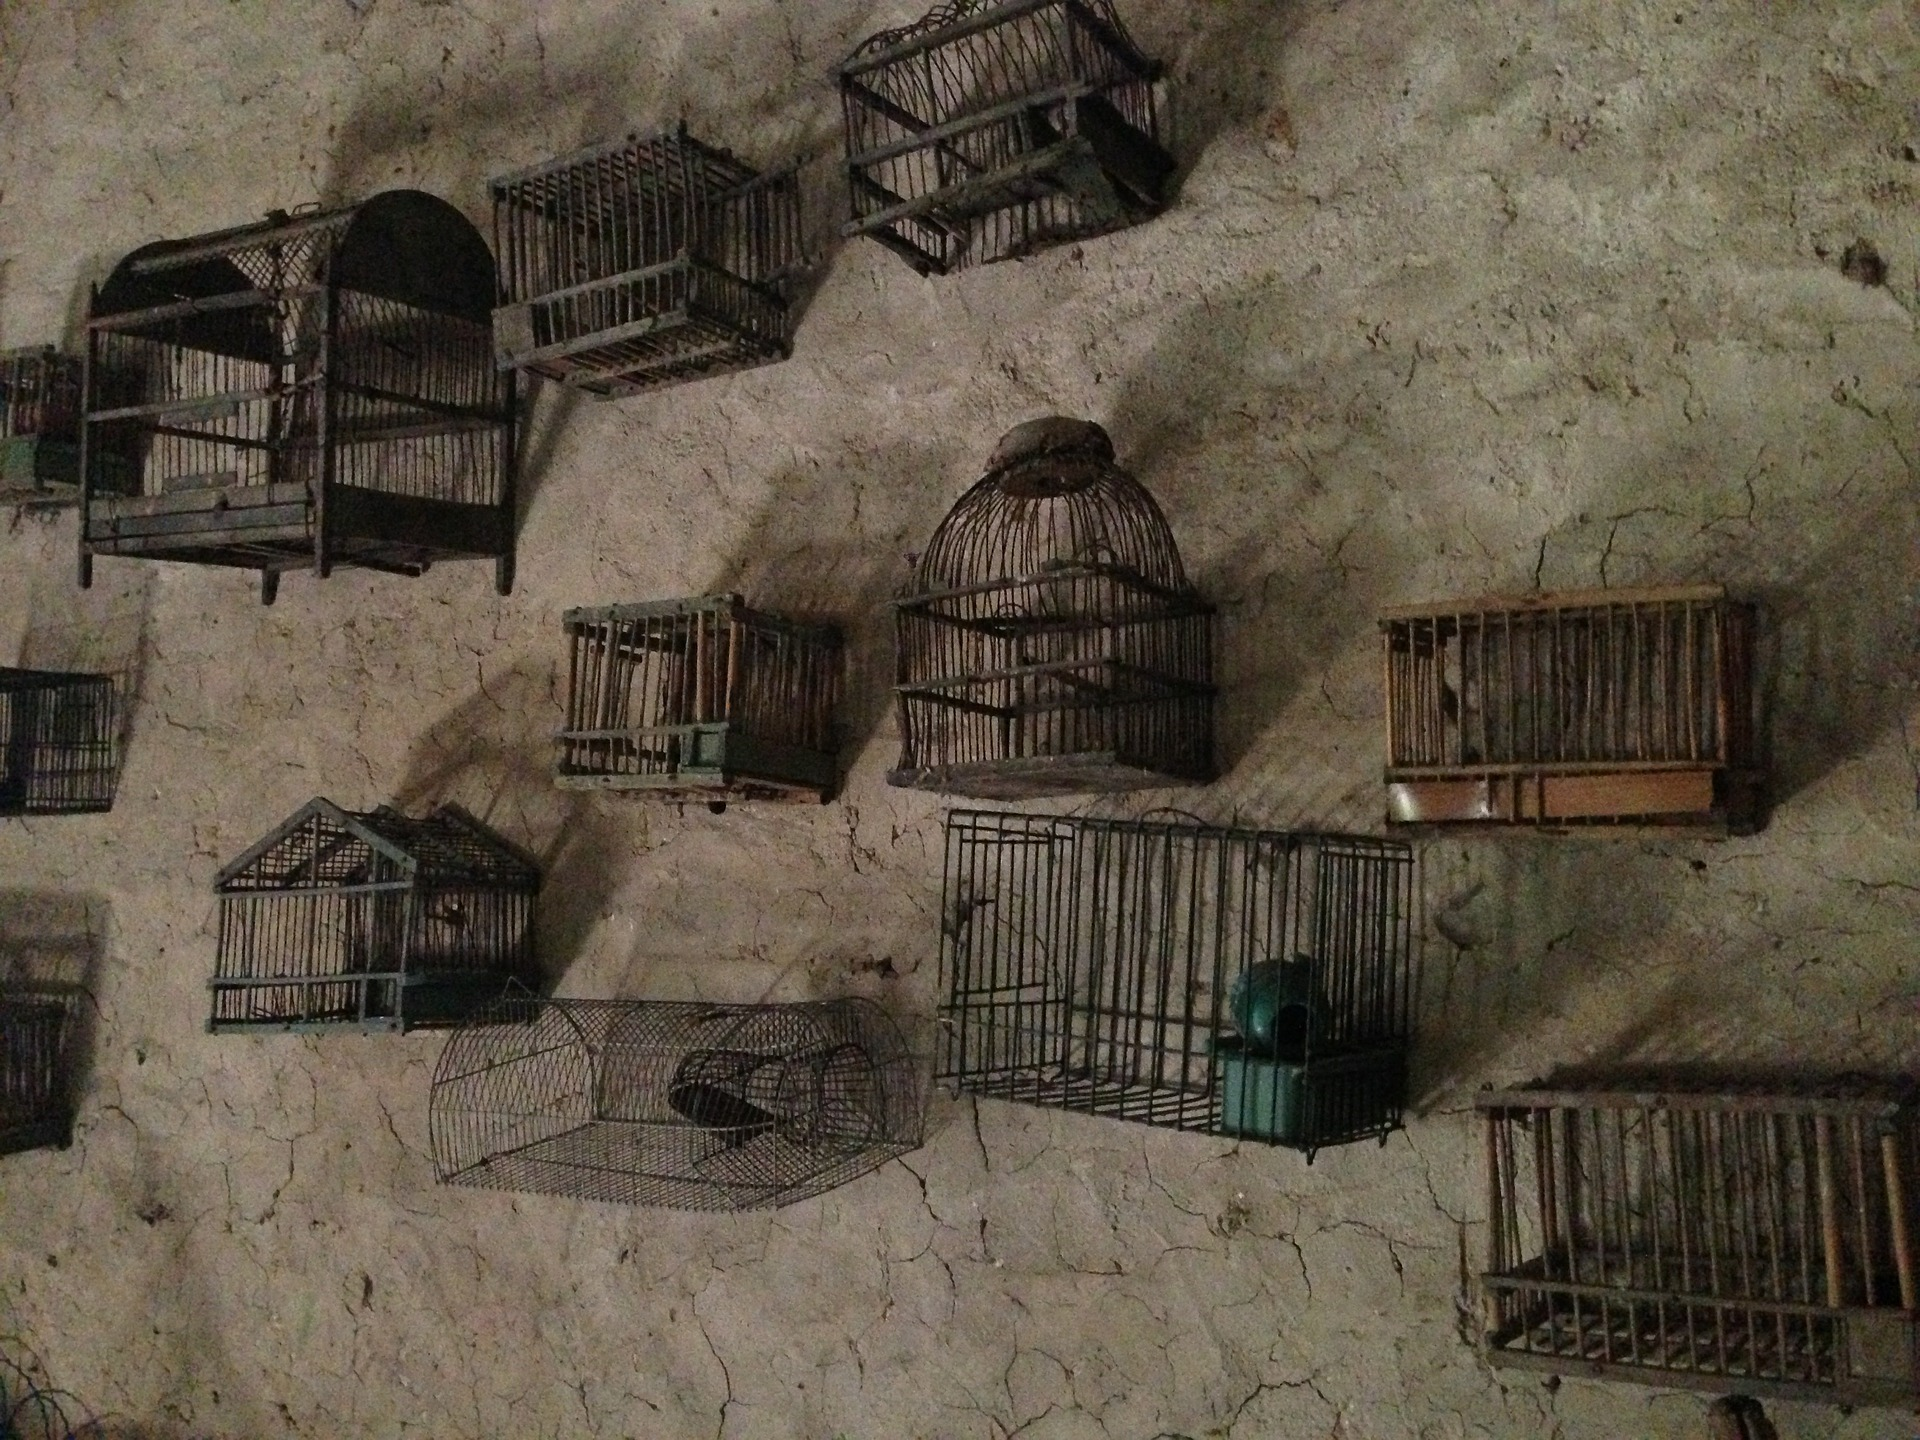 cages-363126_1920